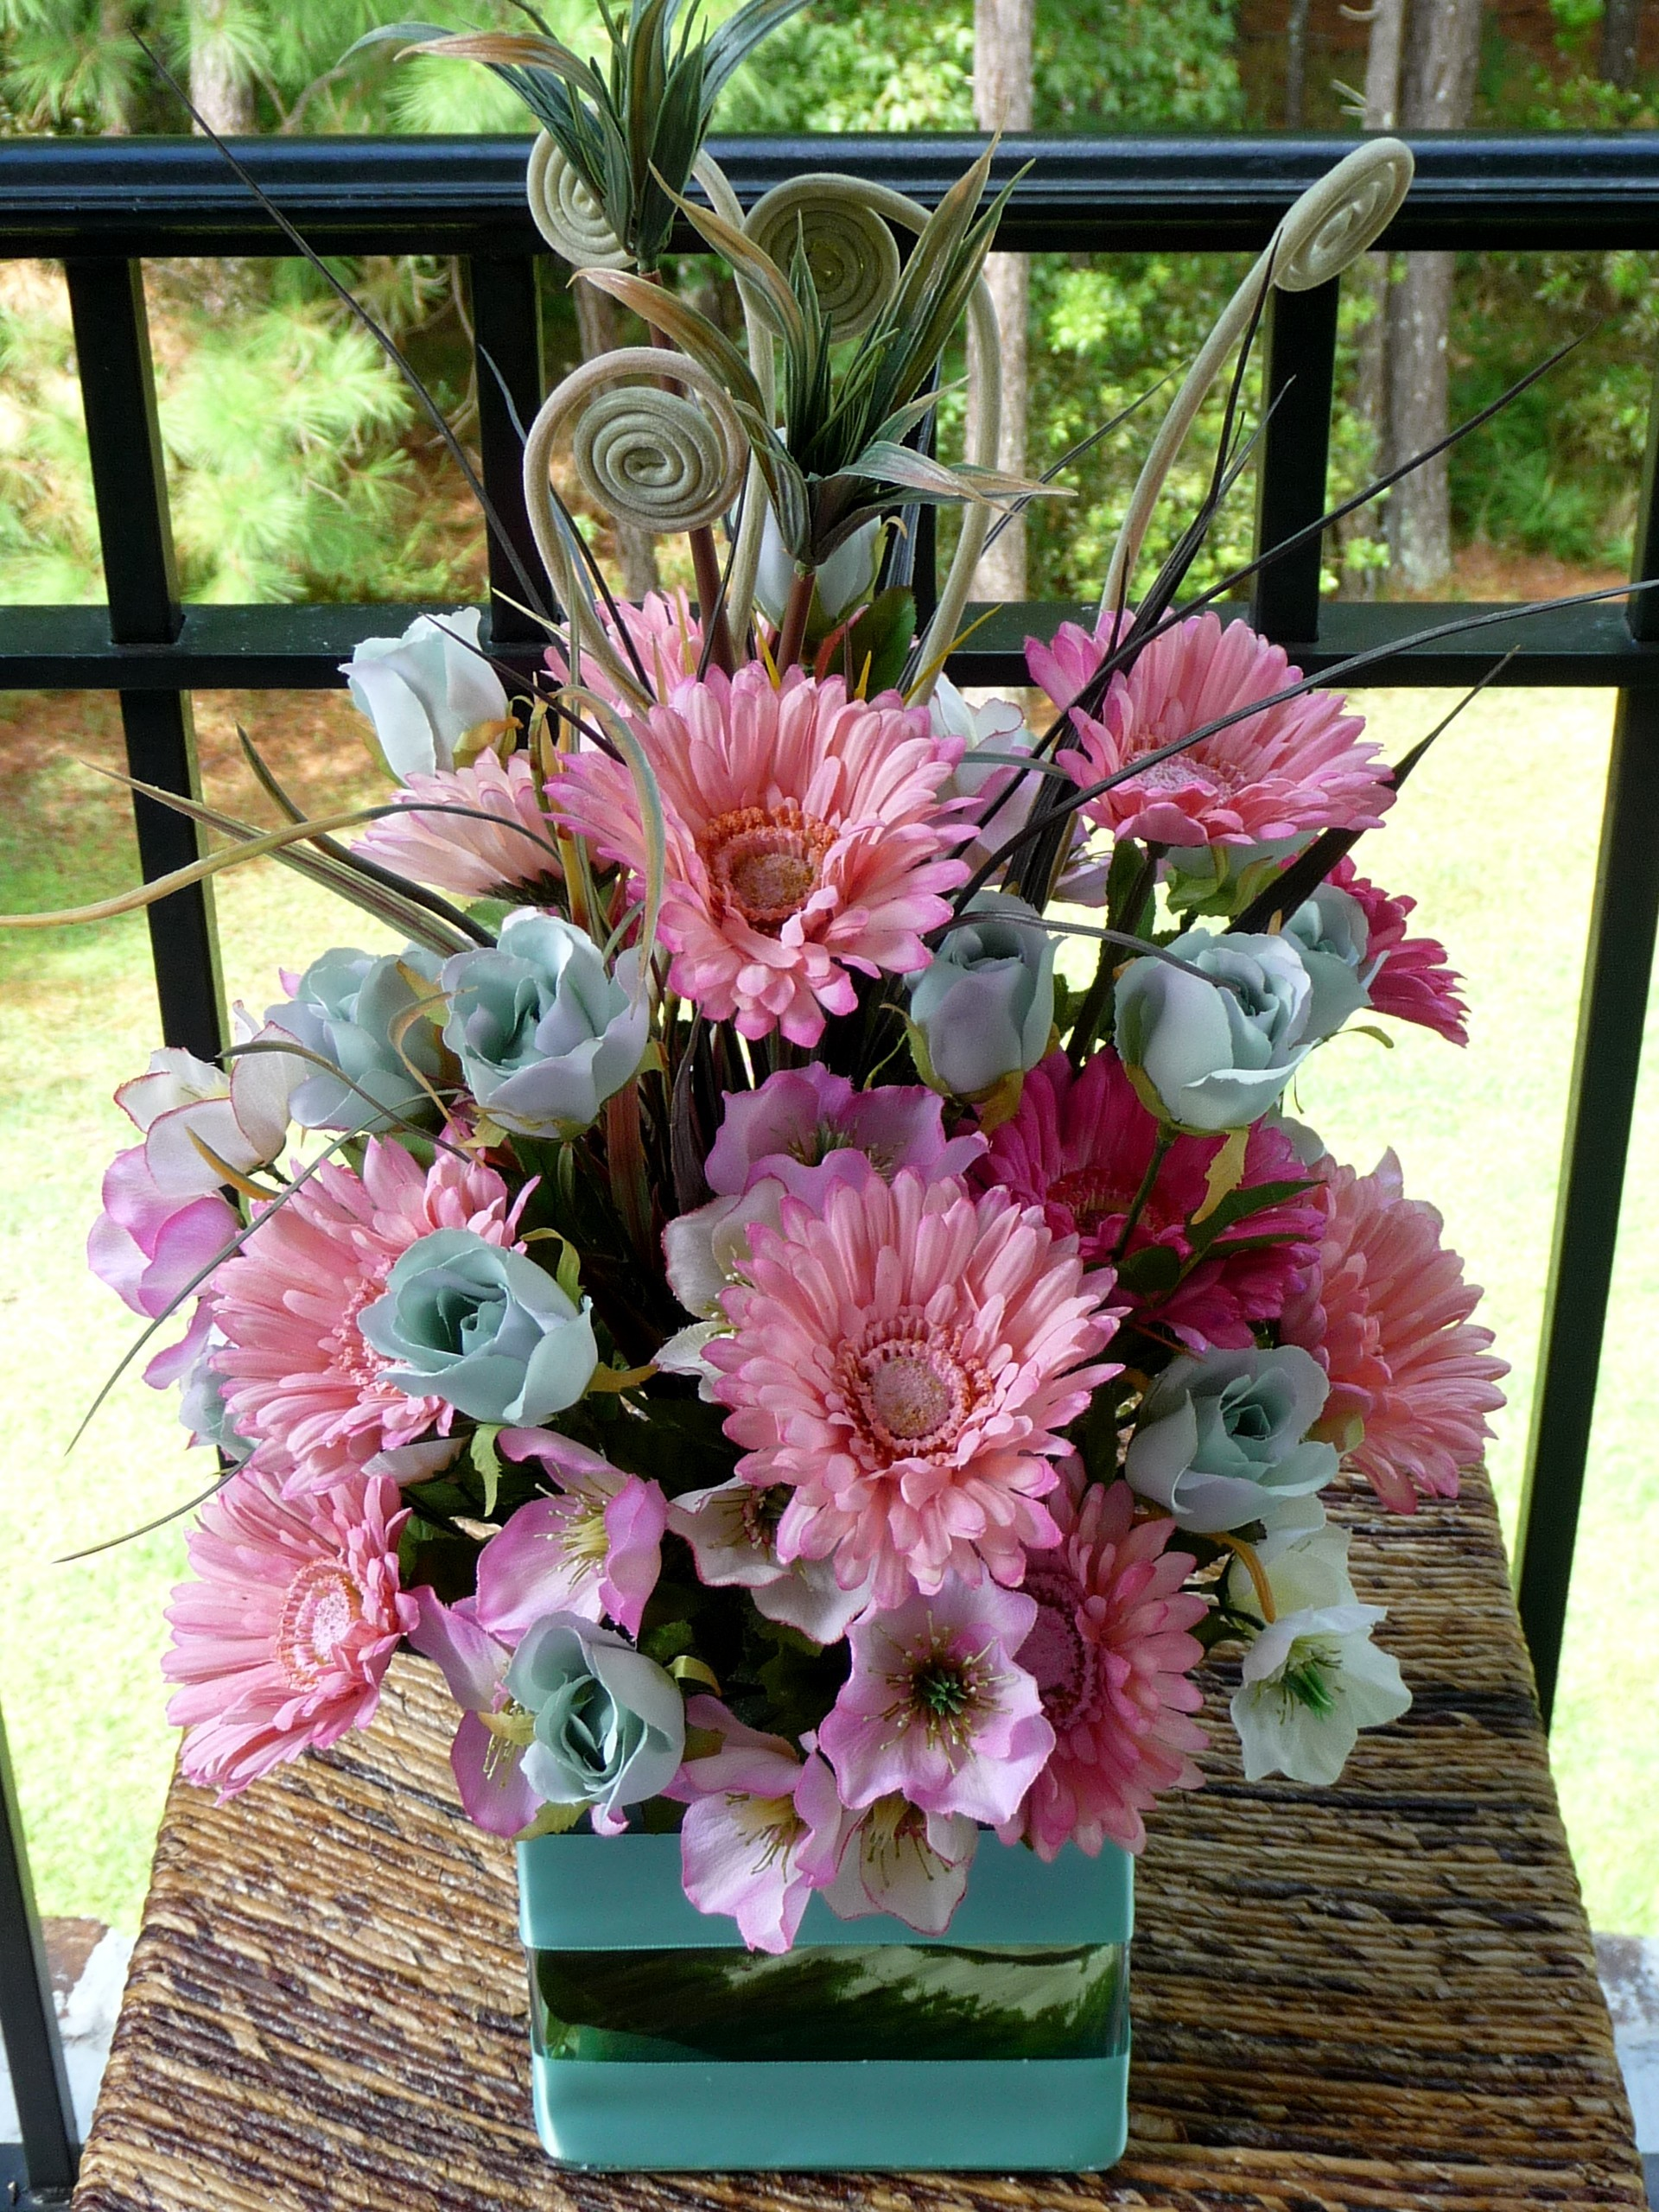 Ceremony, Inspiration, Reception, Flowers & Decor, white, yellow, orange, pink, red, purple, blue, green, brown, black, silver, gold, Ceremony Flowers, Centerpieces, Flowers, Wedding, Teal, Board, Daisies, Gerbera, Savannah event decor